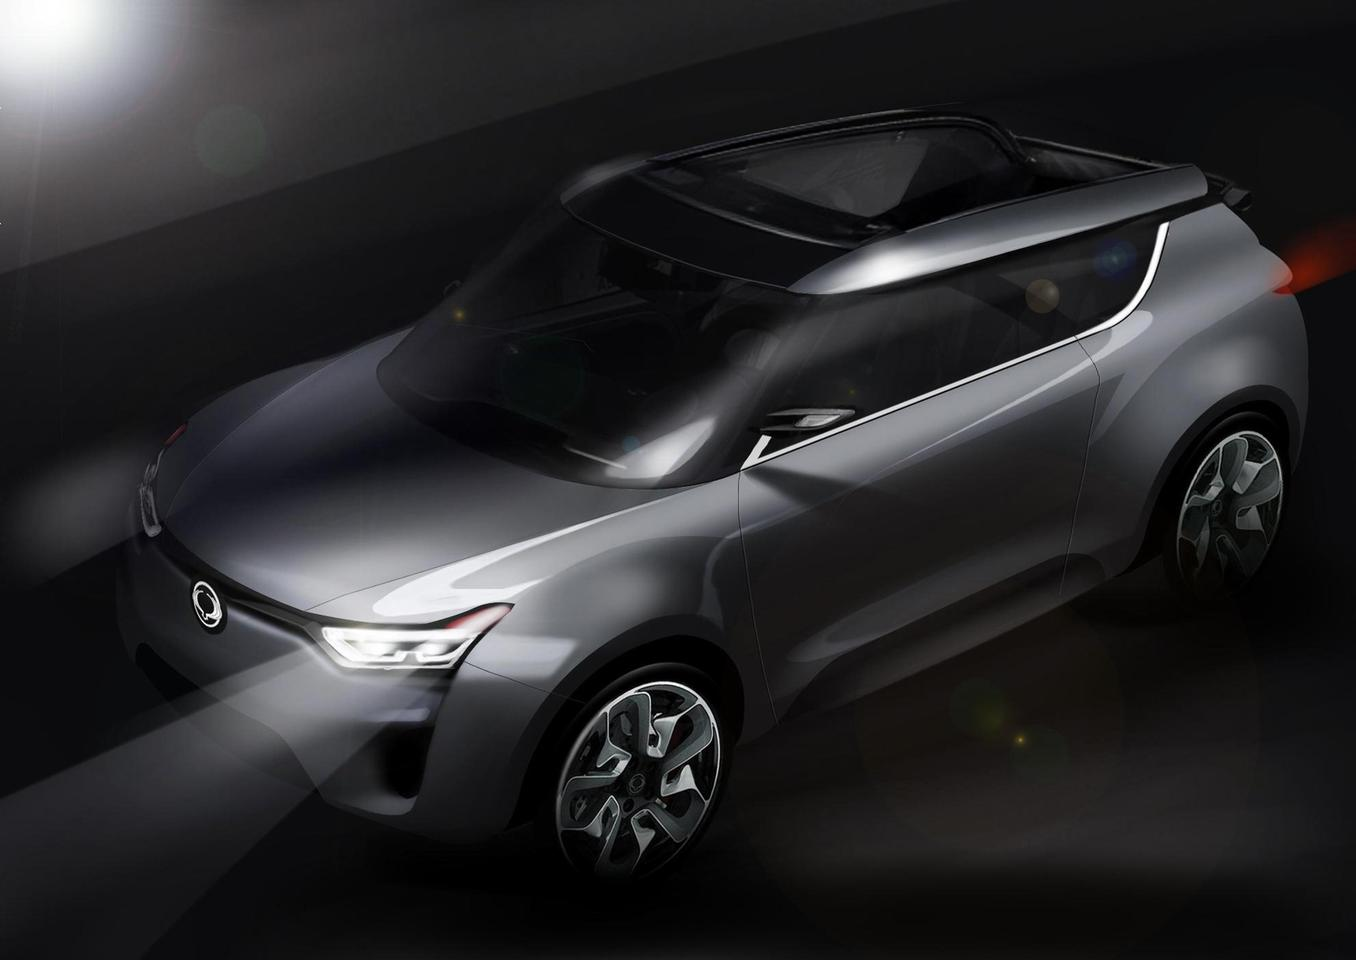 The Ssangyong XIV-2 Concept